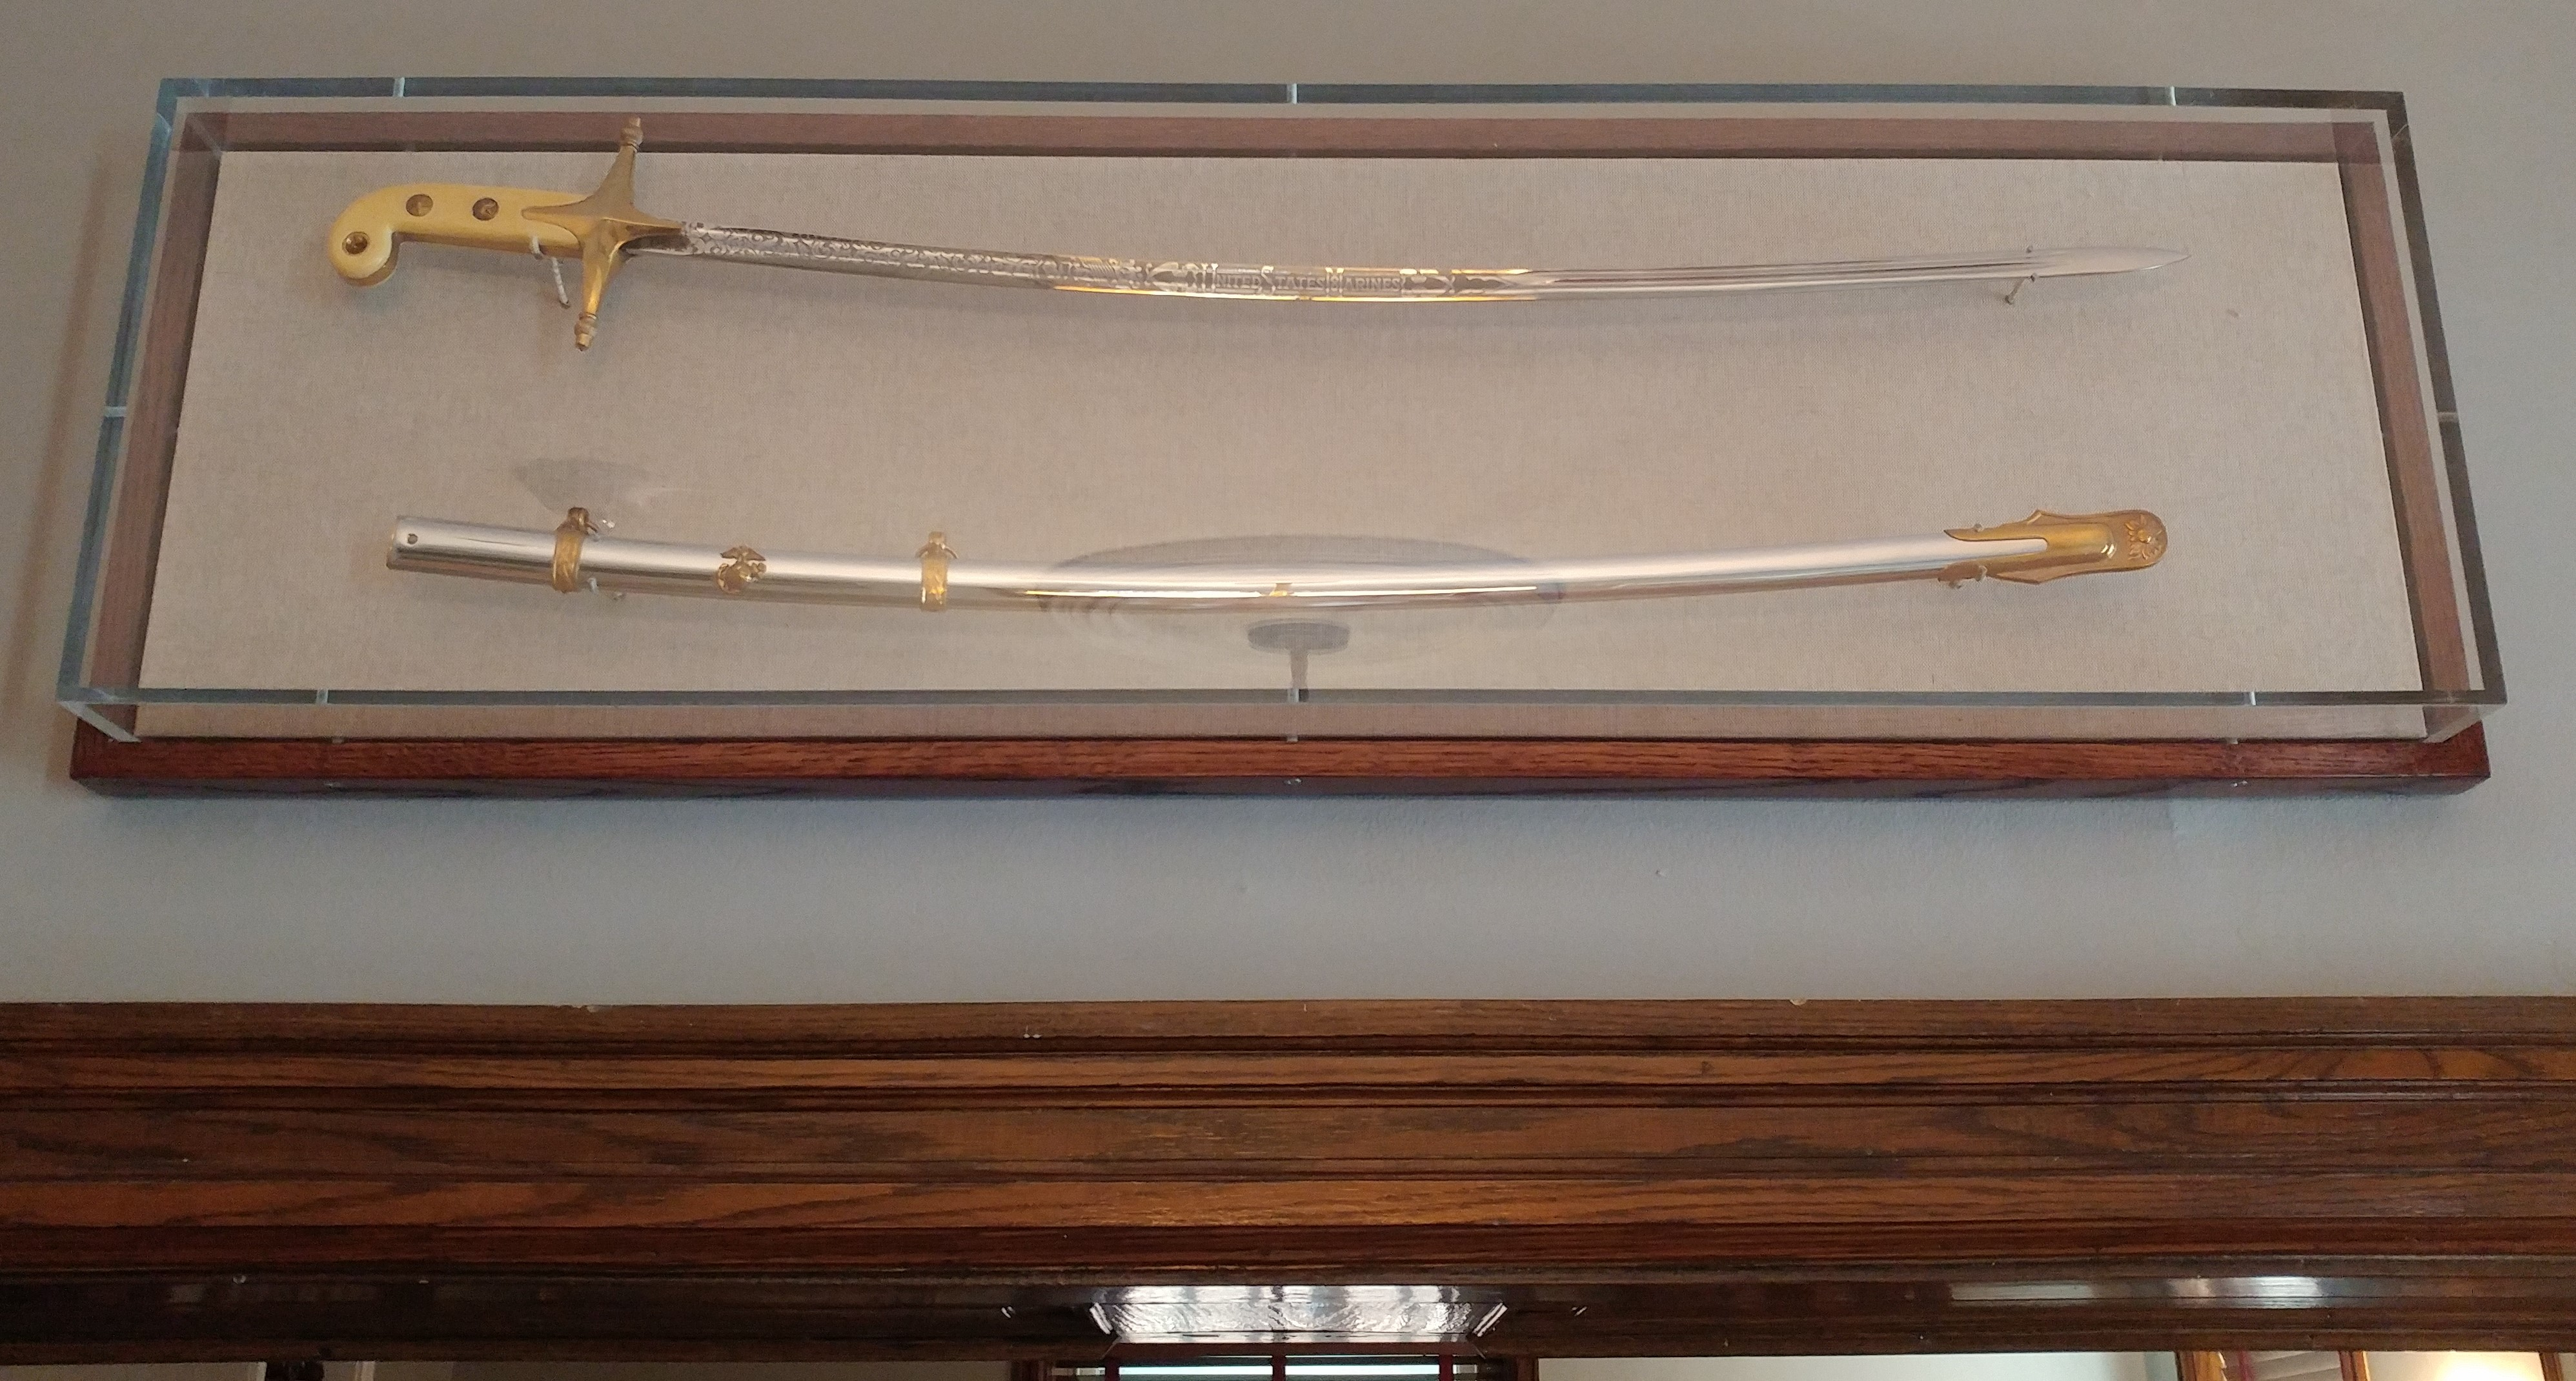 Batterton Sword Encased in Dining Room